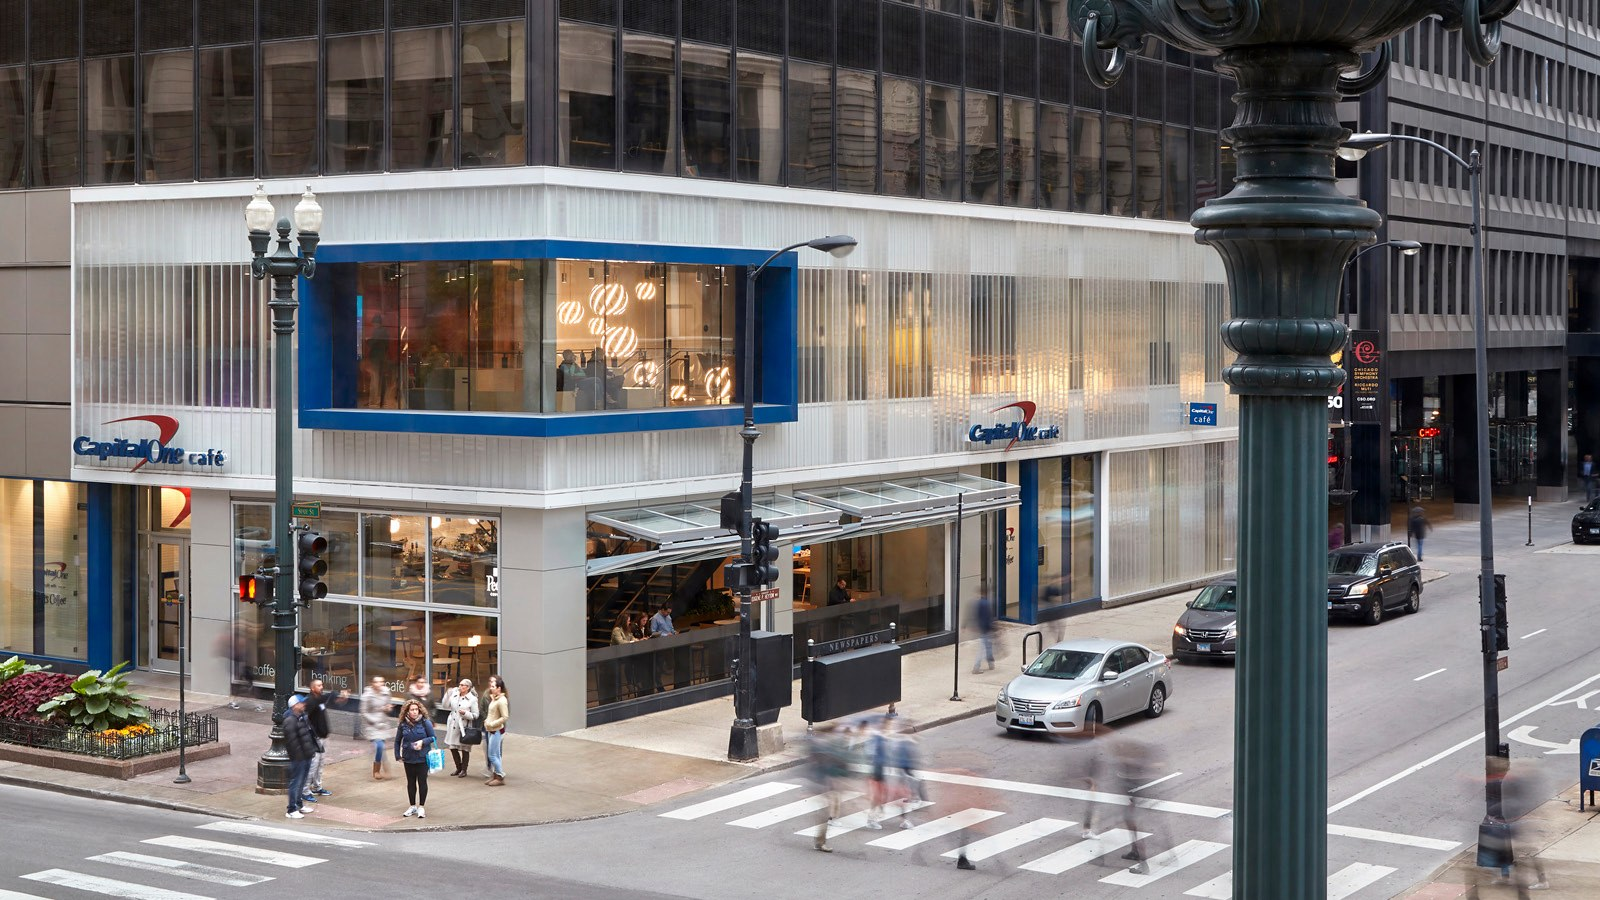 Exterior View of the Chicago Capital One Café at 100 State Street